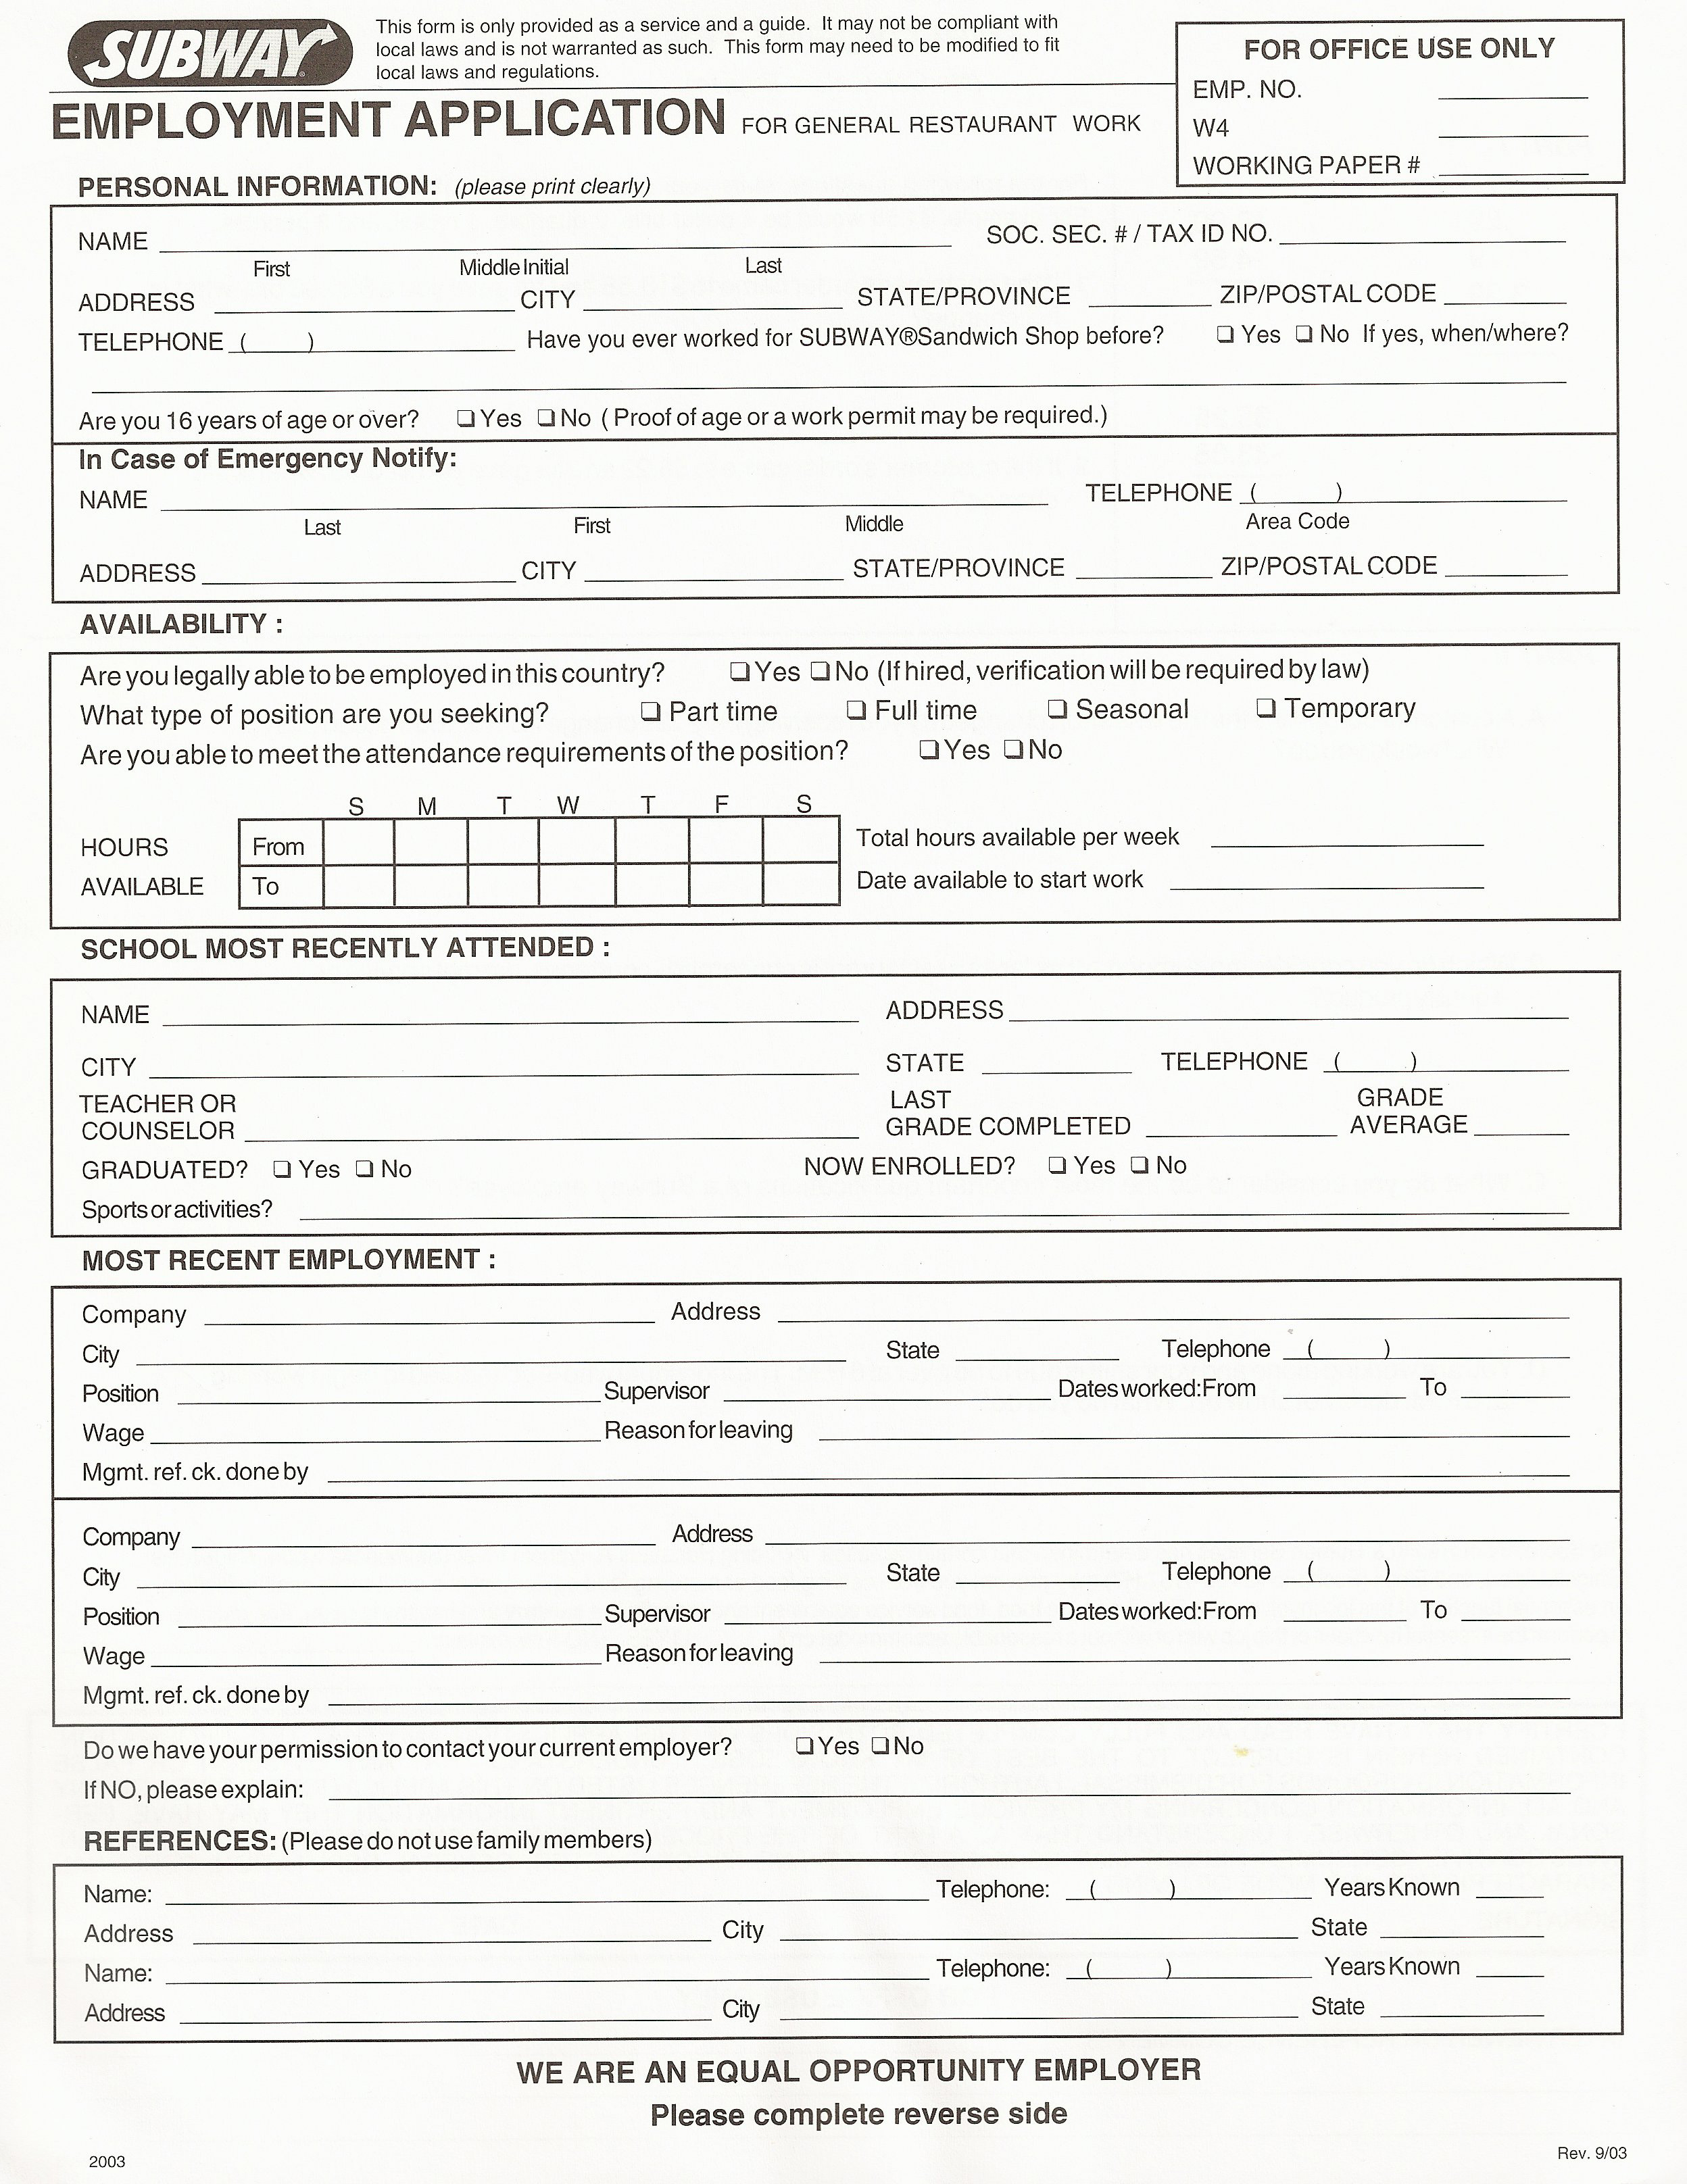 restaurant employment application form how to make an effective